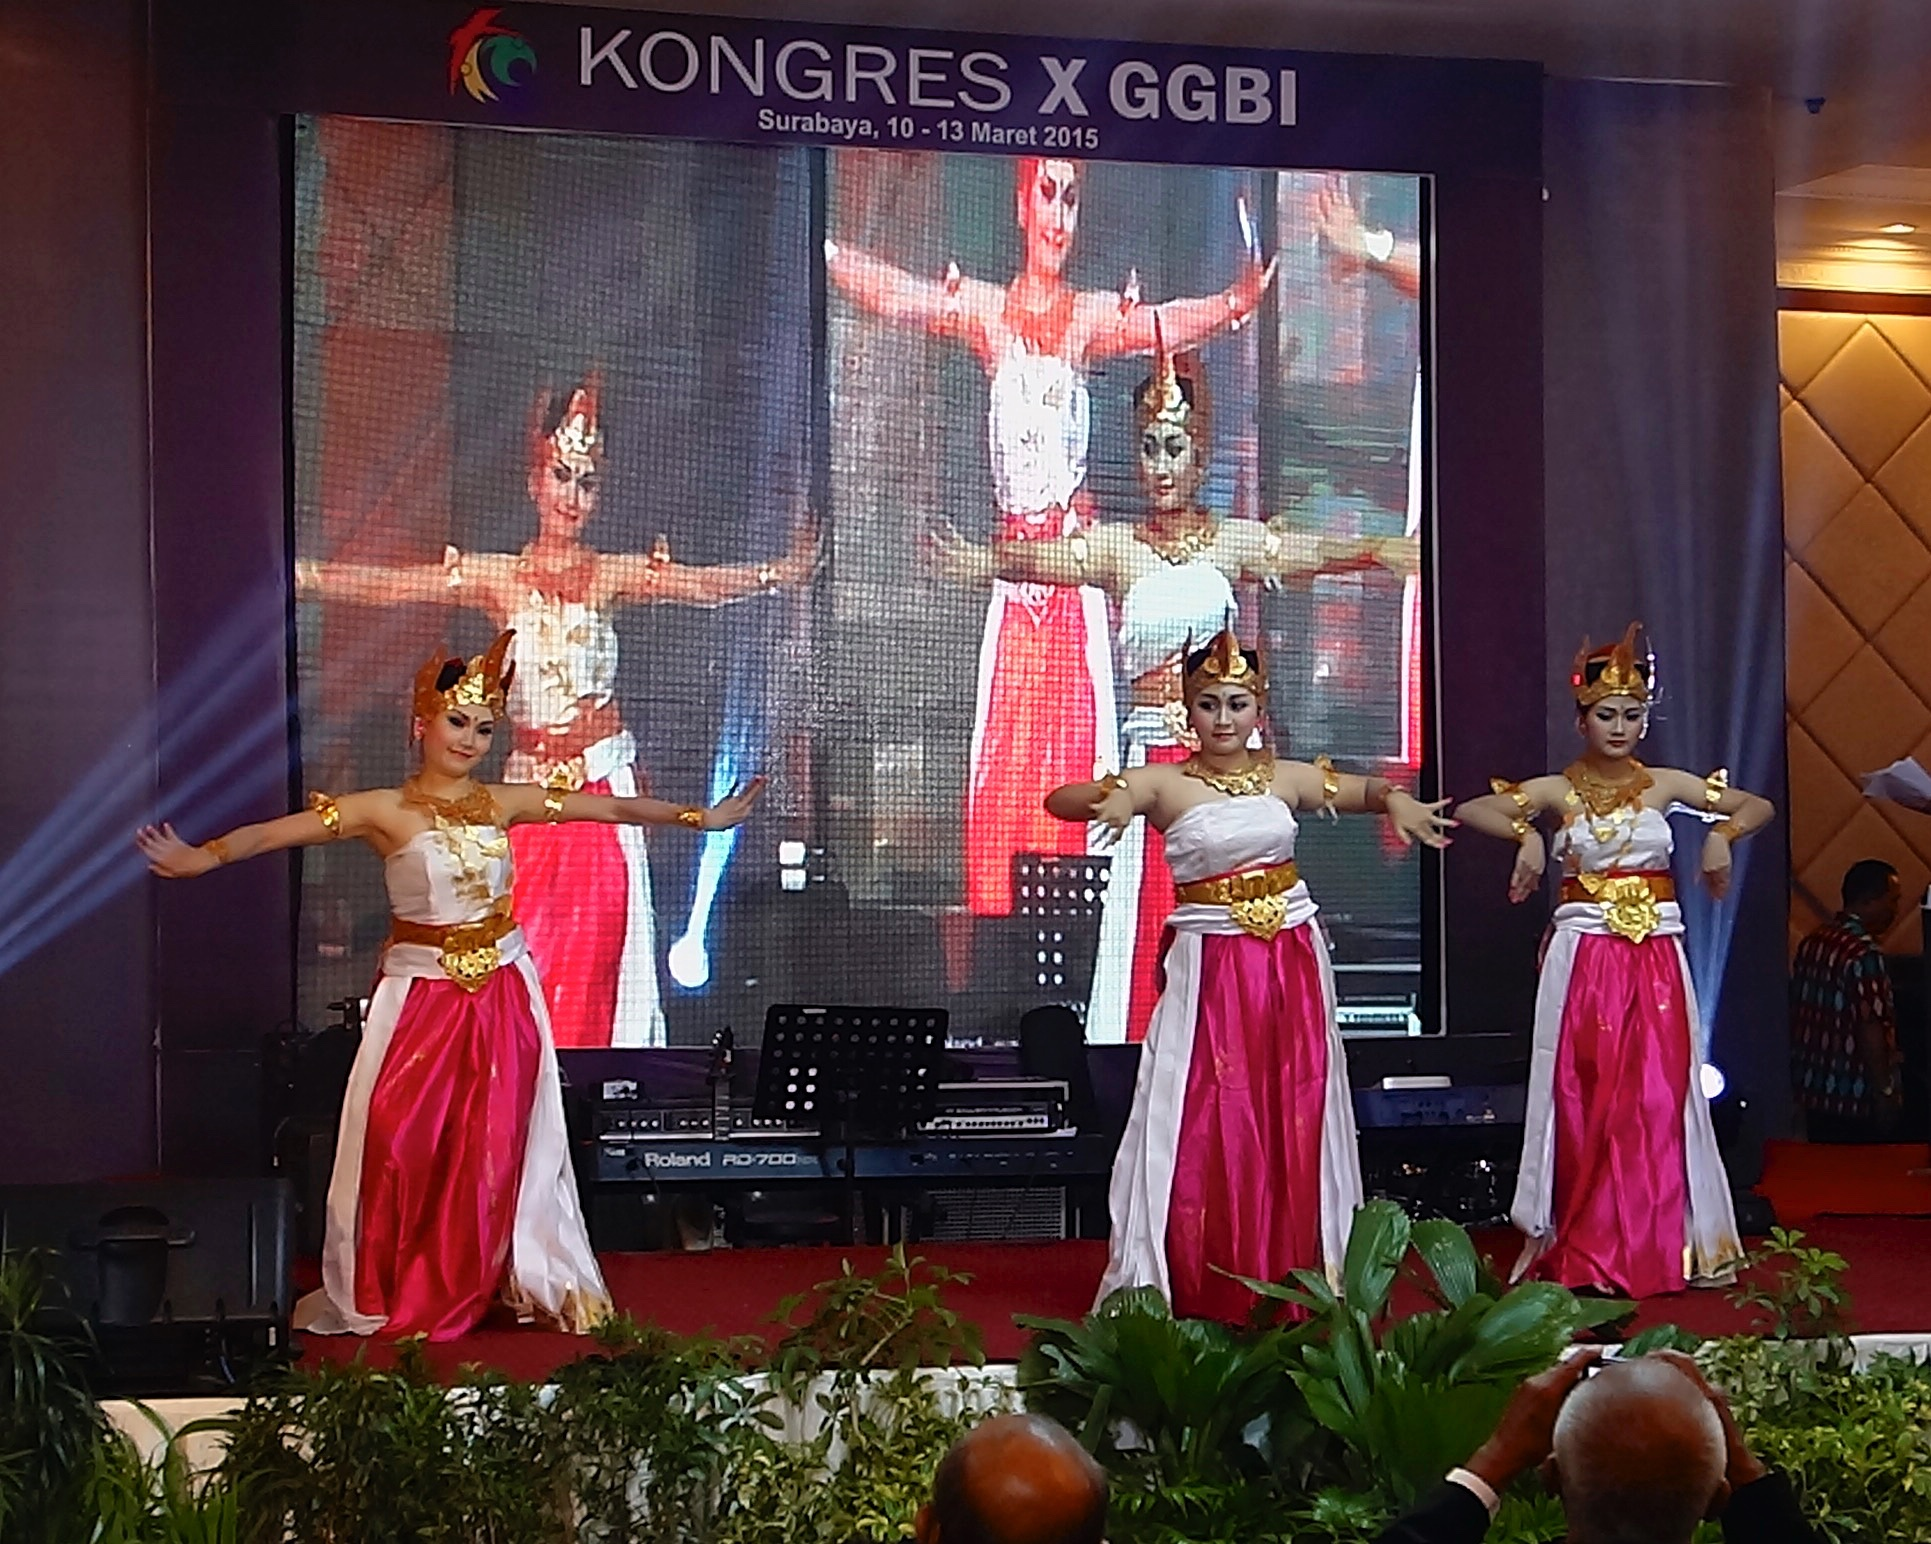 Indonesian Baptists celebrated their rich cultural diversity during the Congress